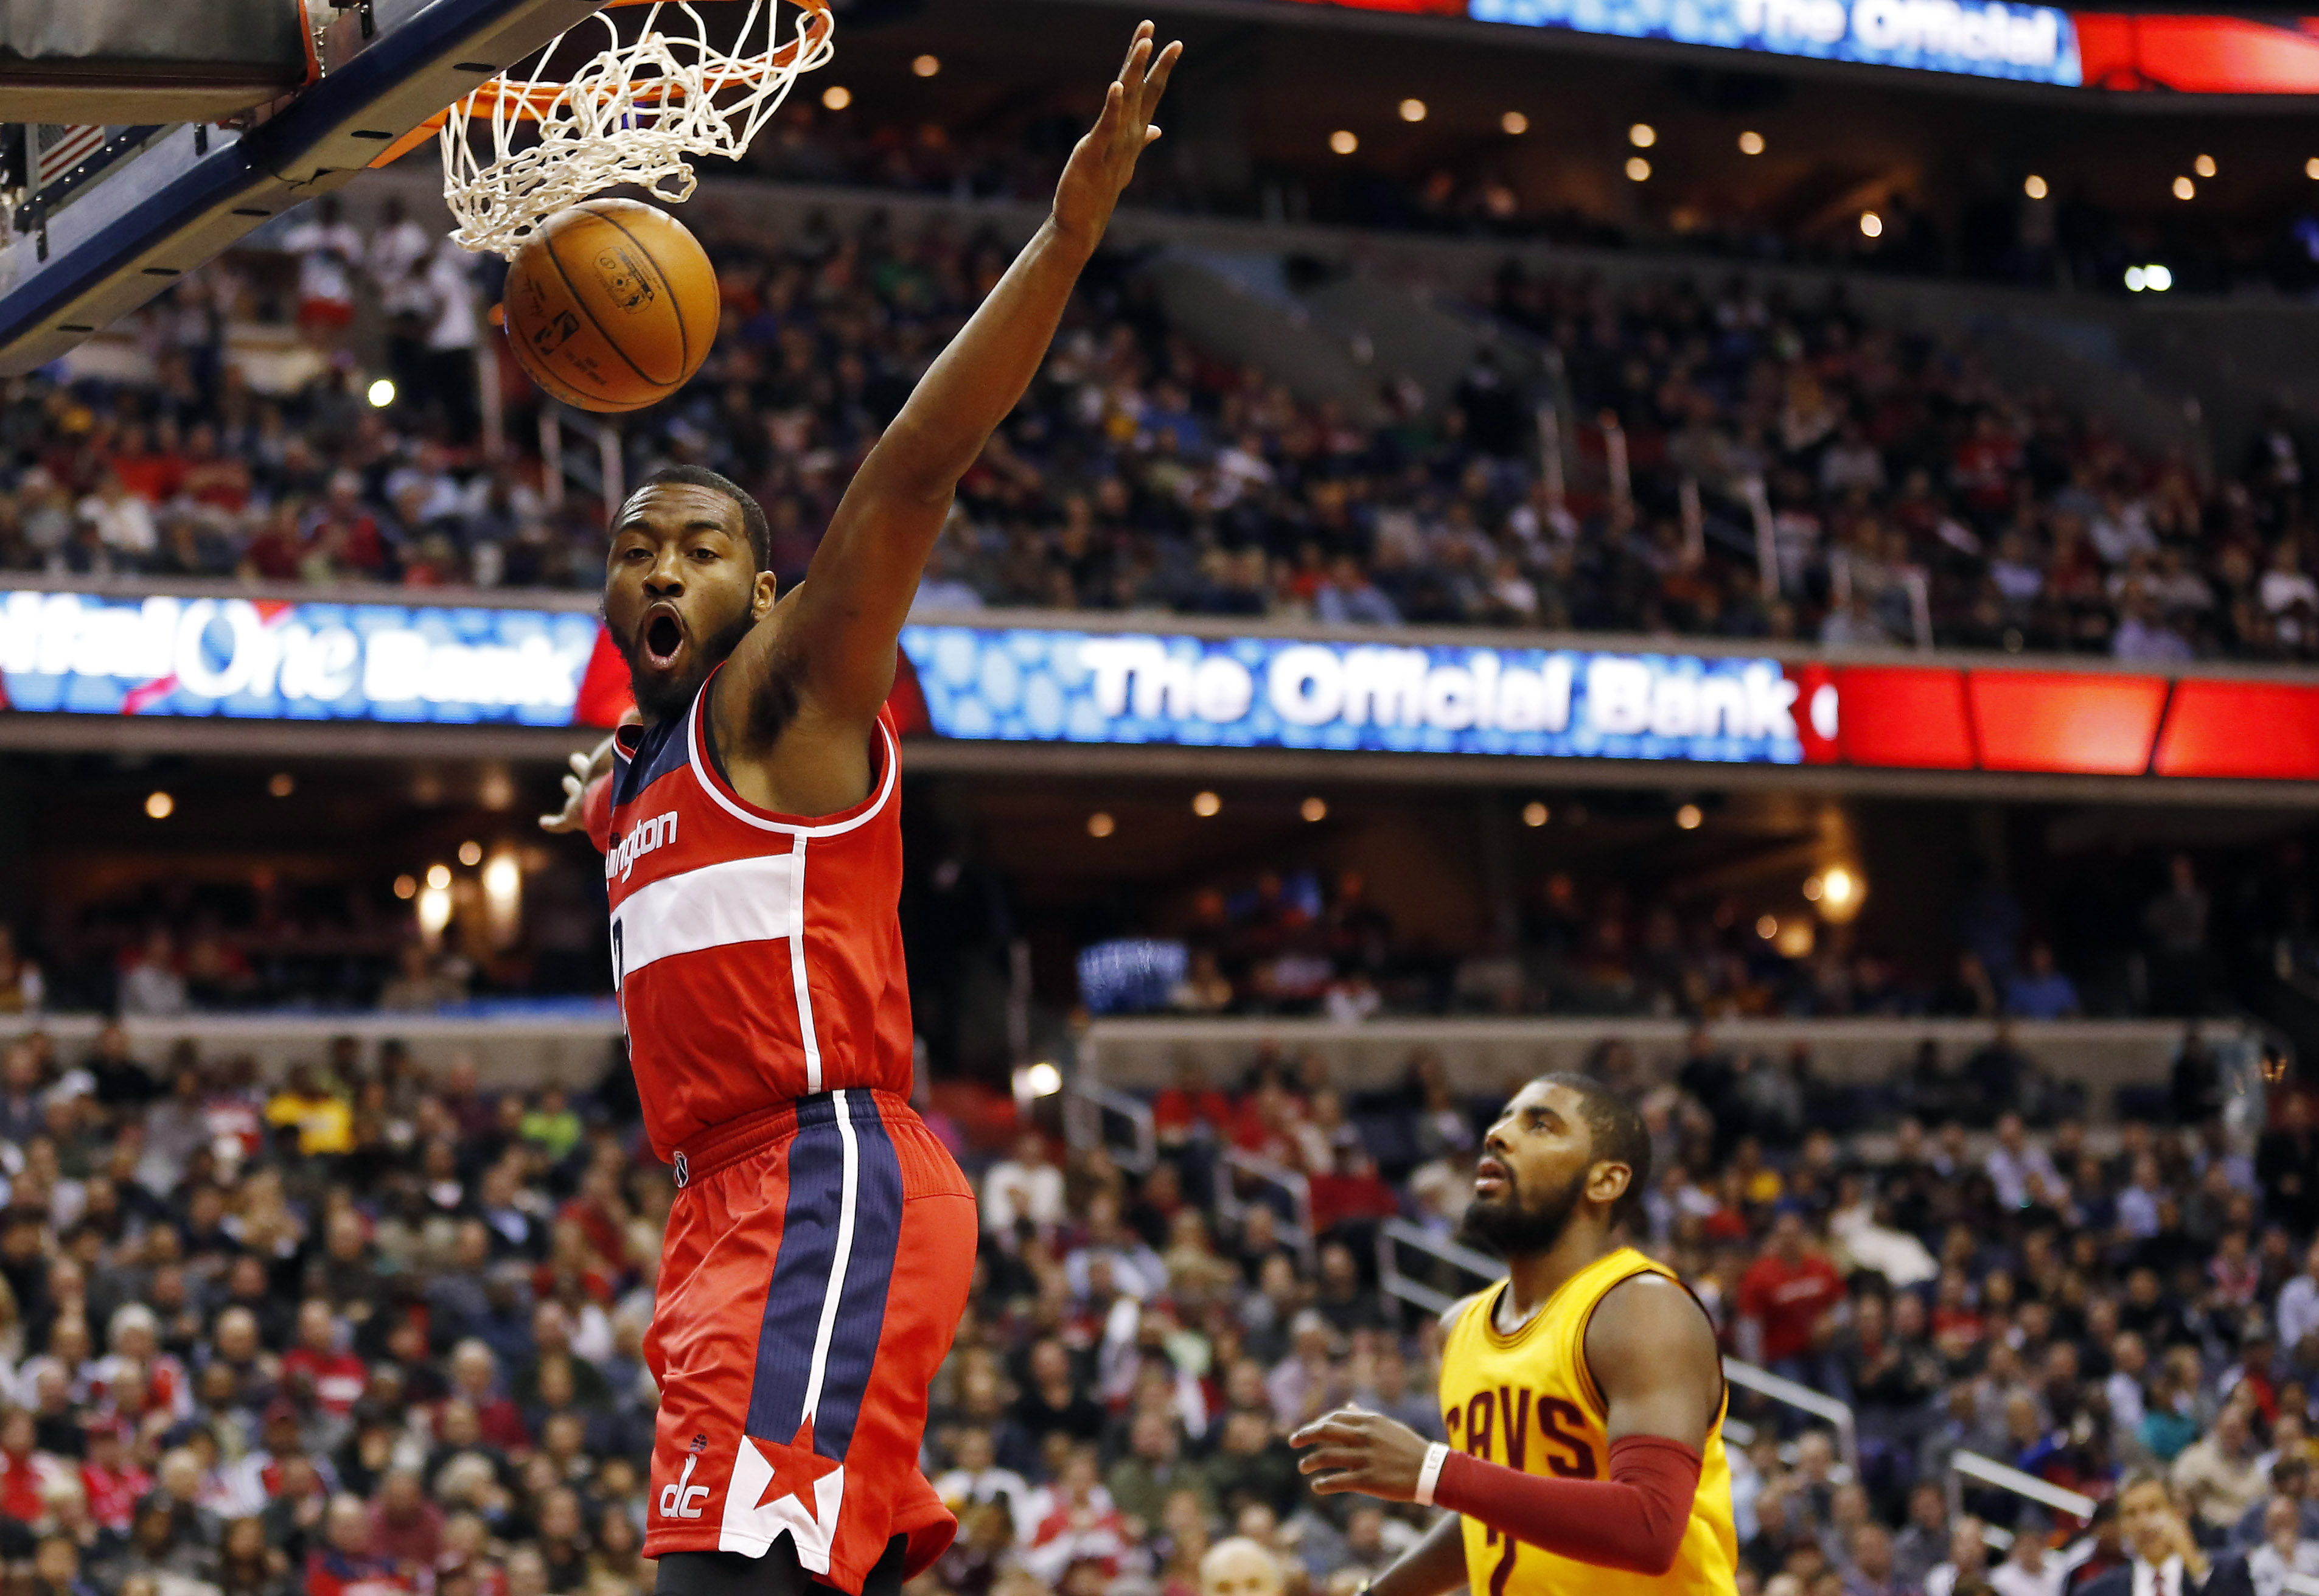 NBA scores 2014: John Wall leads Wizards over Cavs and 3 other things we learned